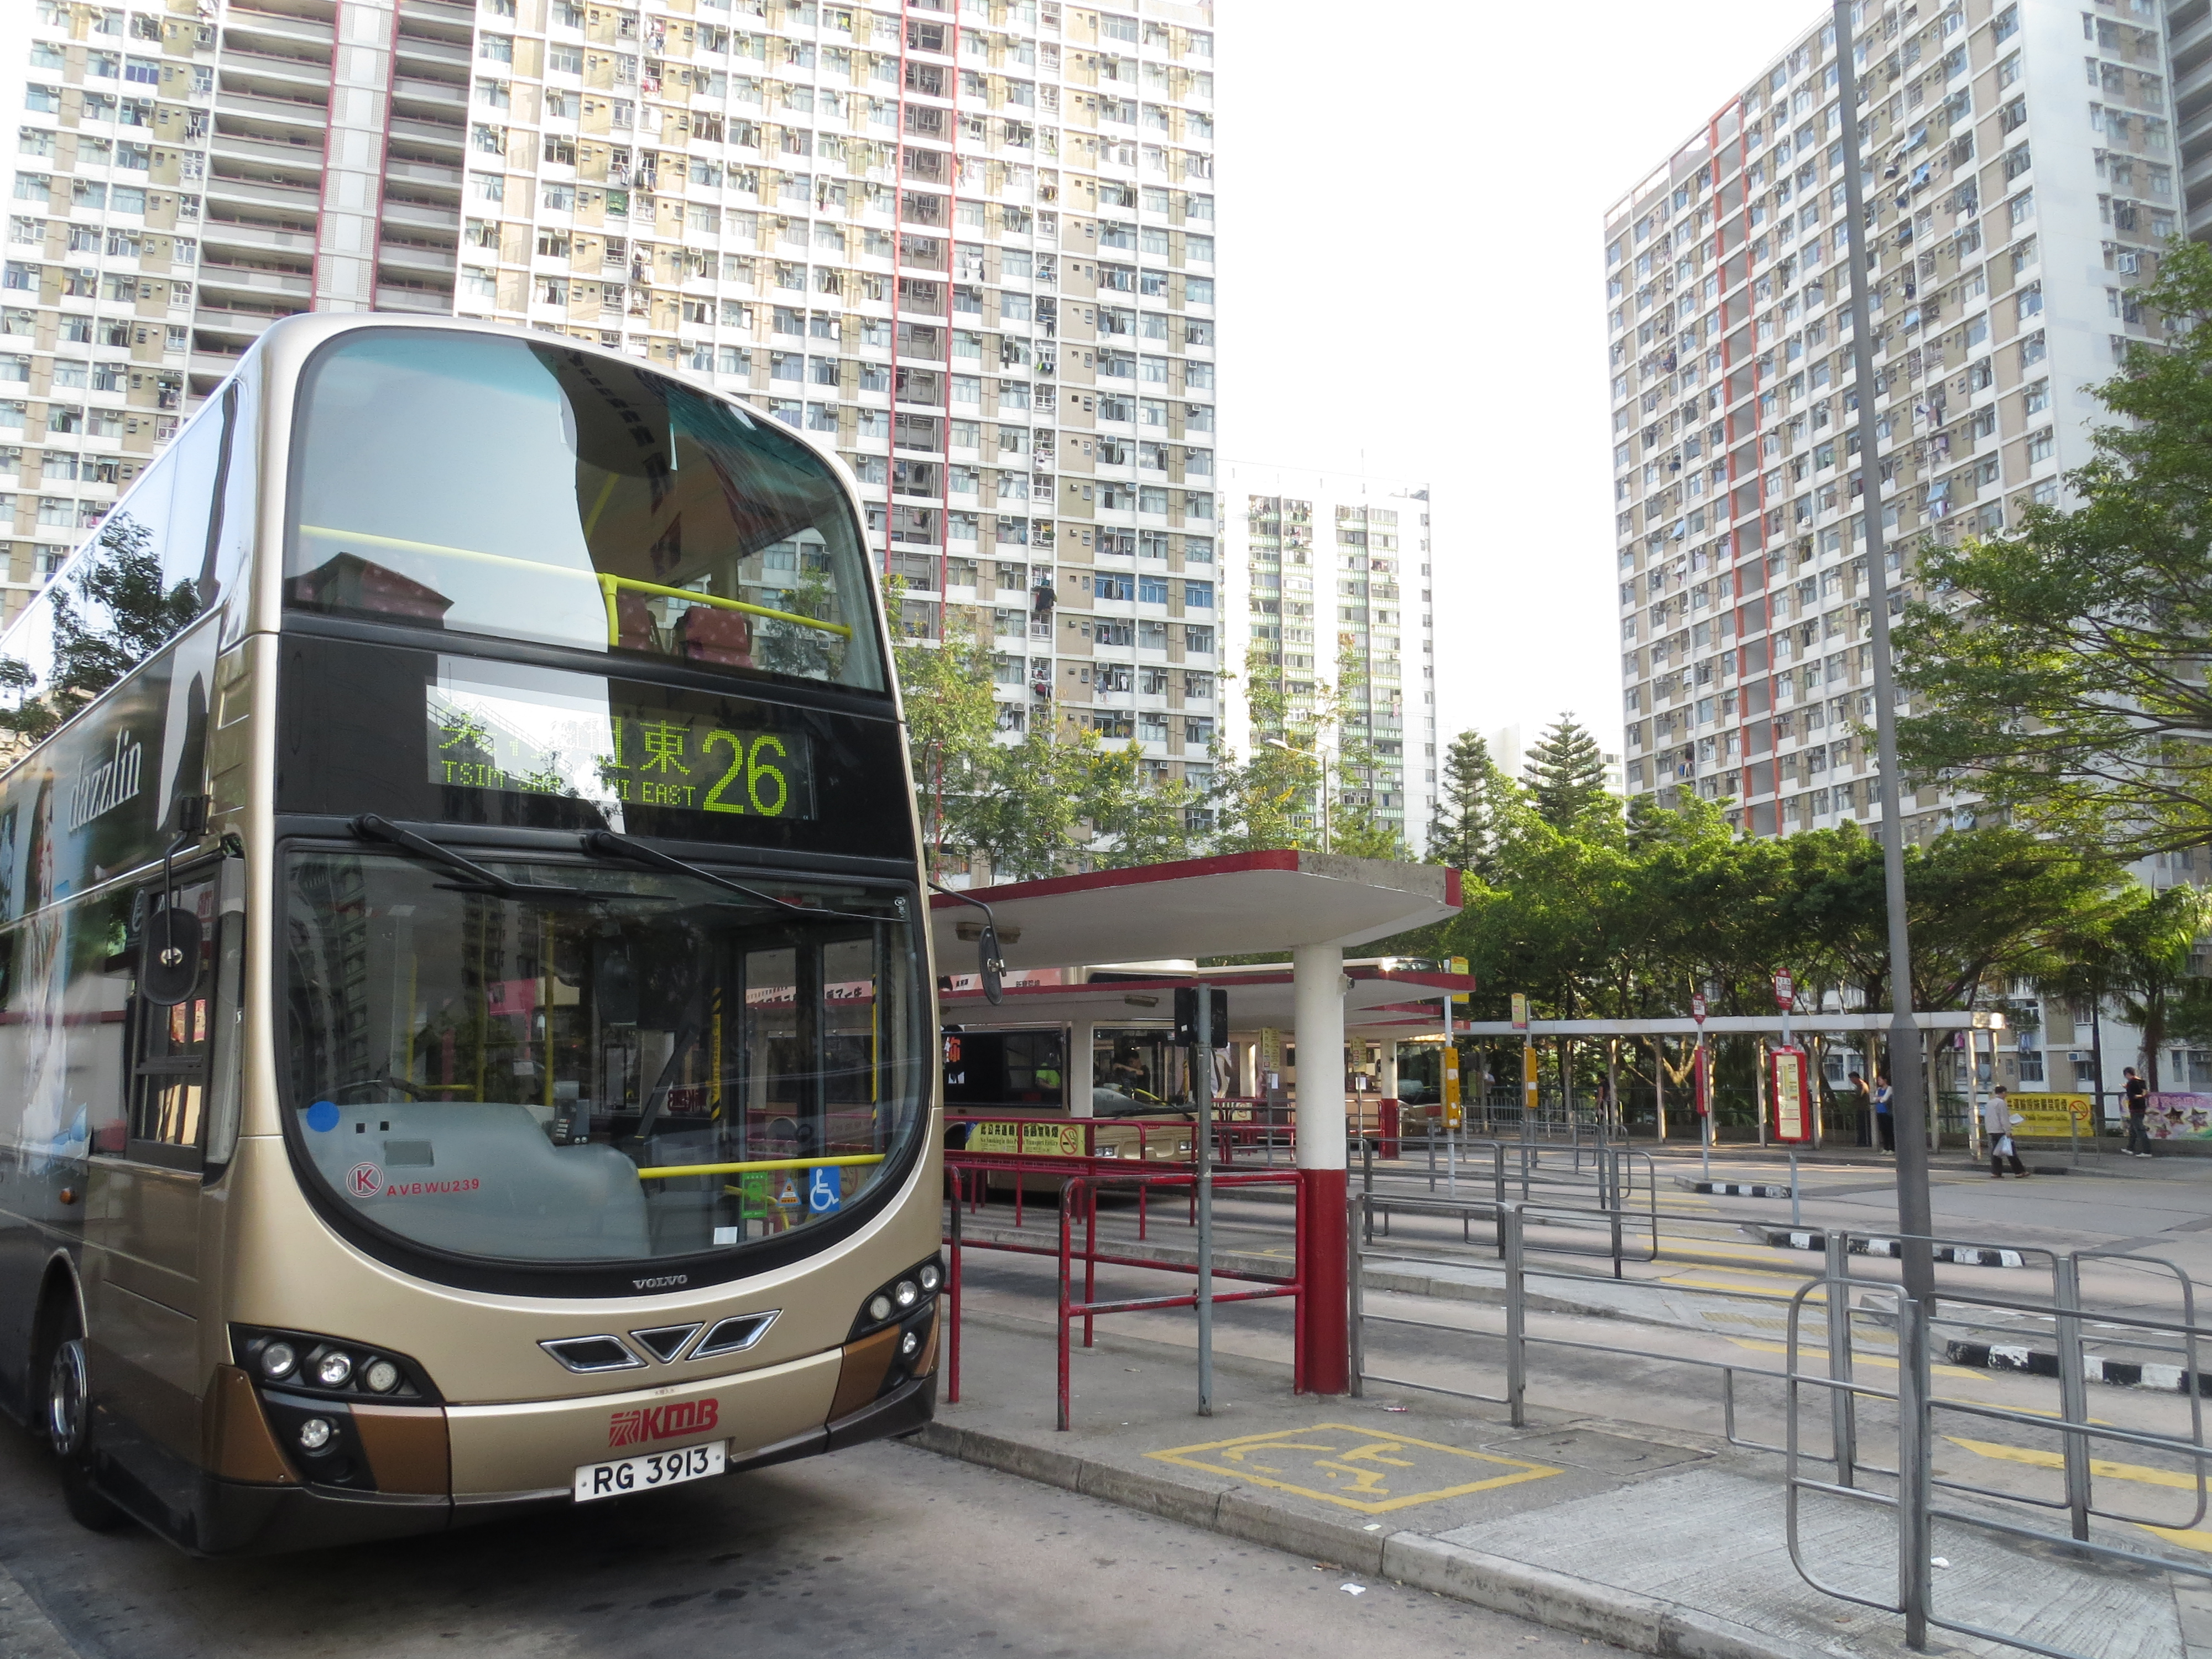 File:Shun Tin Bus Terminus and KMB Route No. 26 bus (Hong Kong).jpg on kowloon tong, manila bus route map, airport express, philadelphia bus route map, chai wan, frankfurt bus route map, rome bus route map, island line, stockholm bus route map, new york city bus route map, sham shui po, canada bus route map, orlando bus route map, causeway bay, mong kok, luxembourg bus route map, north point, athens bus route map, tsim sha tsui, lima bus route map, tsing yi, tsuen wan, jinan bus route map, sheung wan, wellington bus route map, abu dhabi bus route map, hong kong station, xian bus route map, tseung kwan o, singapore bus route map, zhuhai bus route map, osaka bus route map, qingdao bus route map, yau ma tei, guangzhou bus route map,